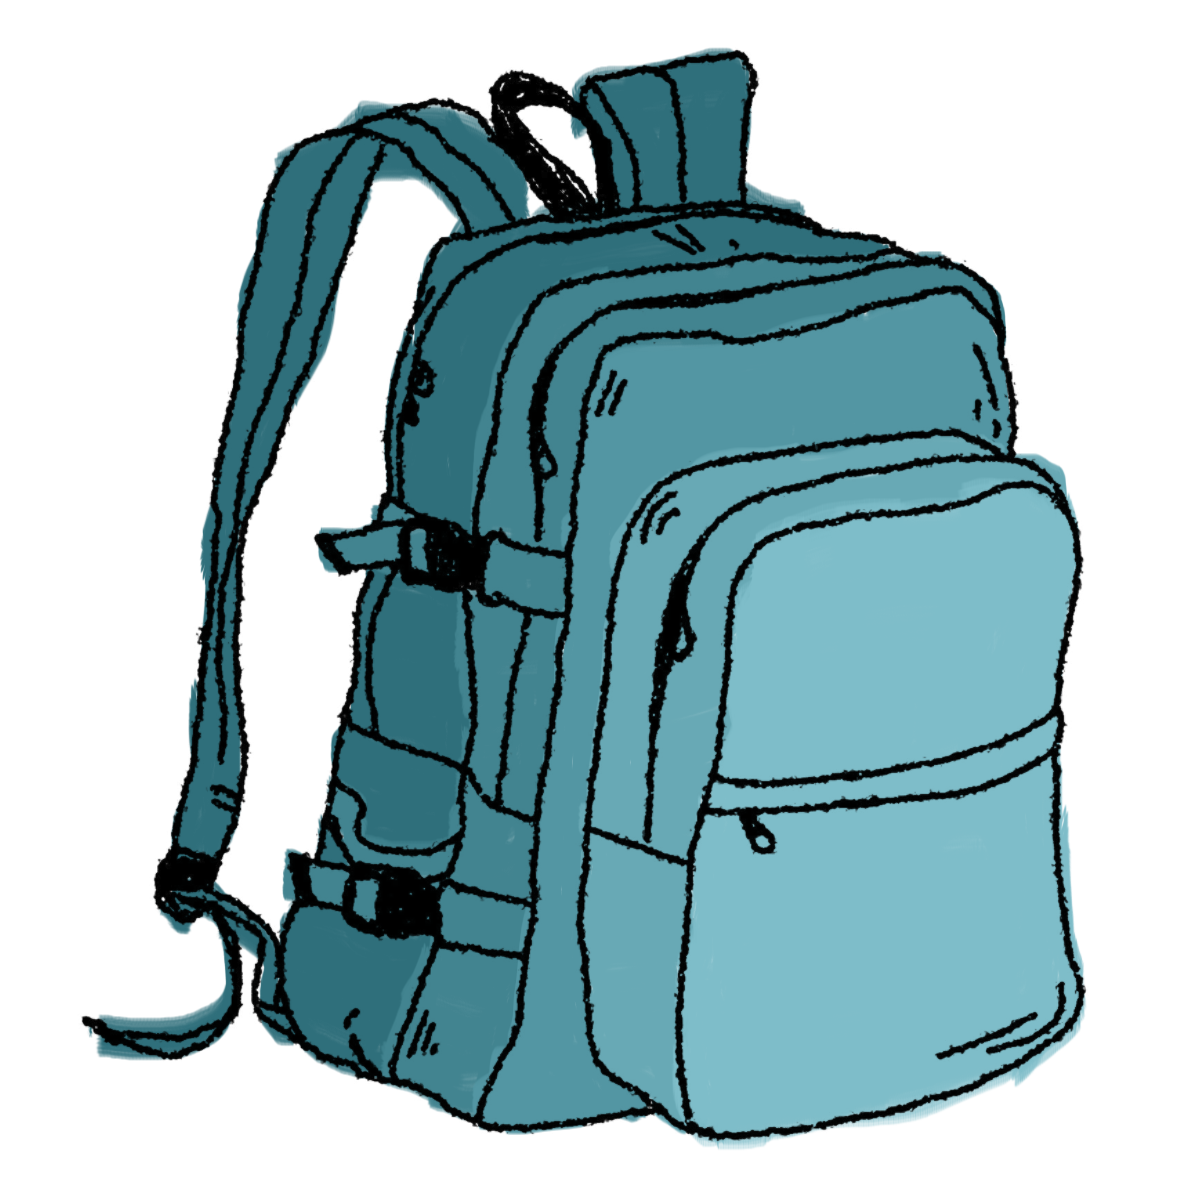 graphic Bookbag clipart. Hiking backpack clip art